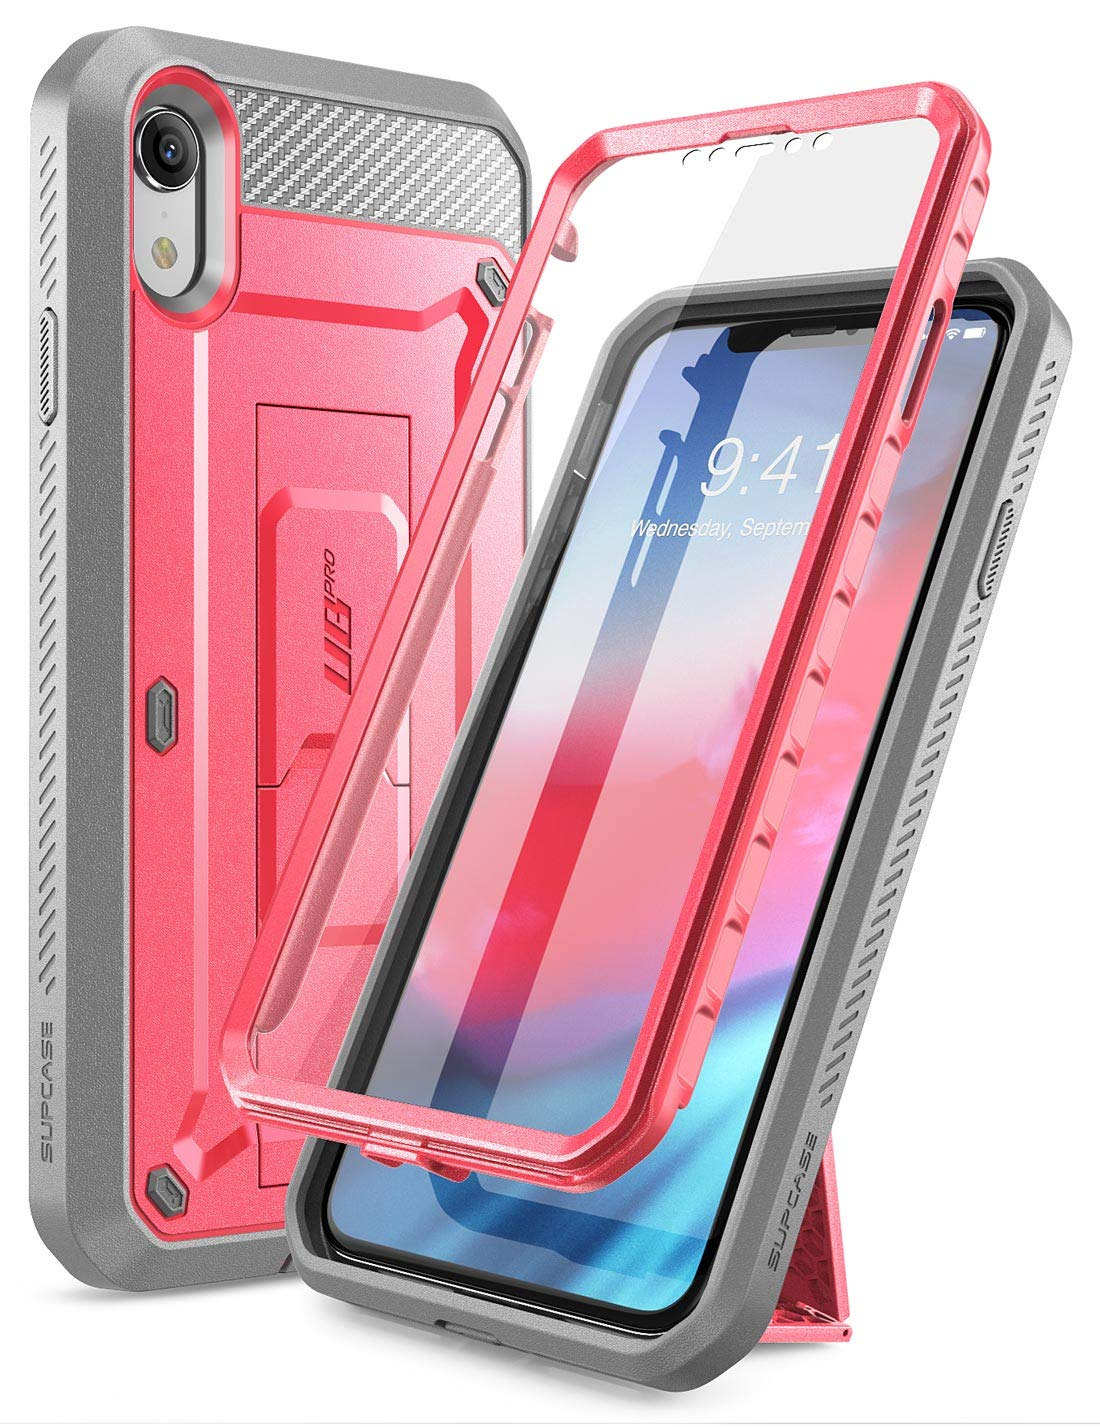 Funda para Iphone Xr con pie SUPCASE (7FPF6R59)